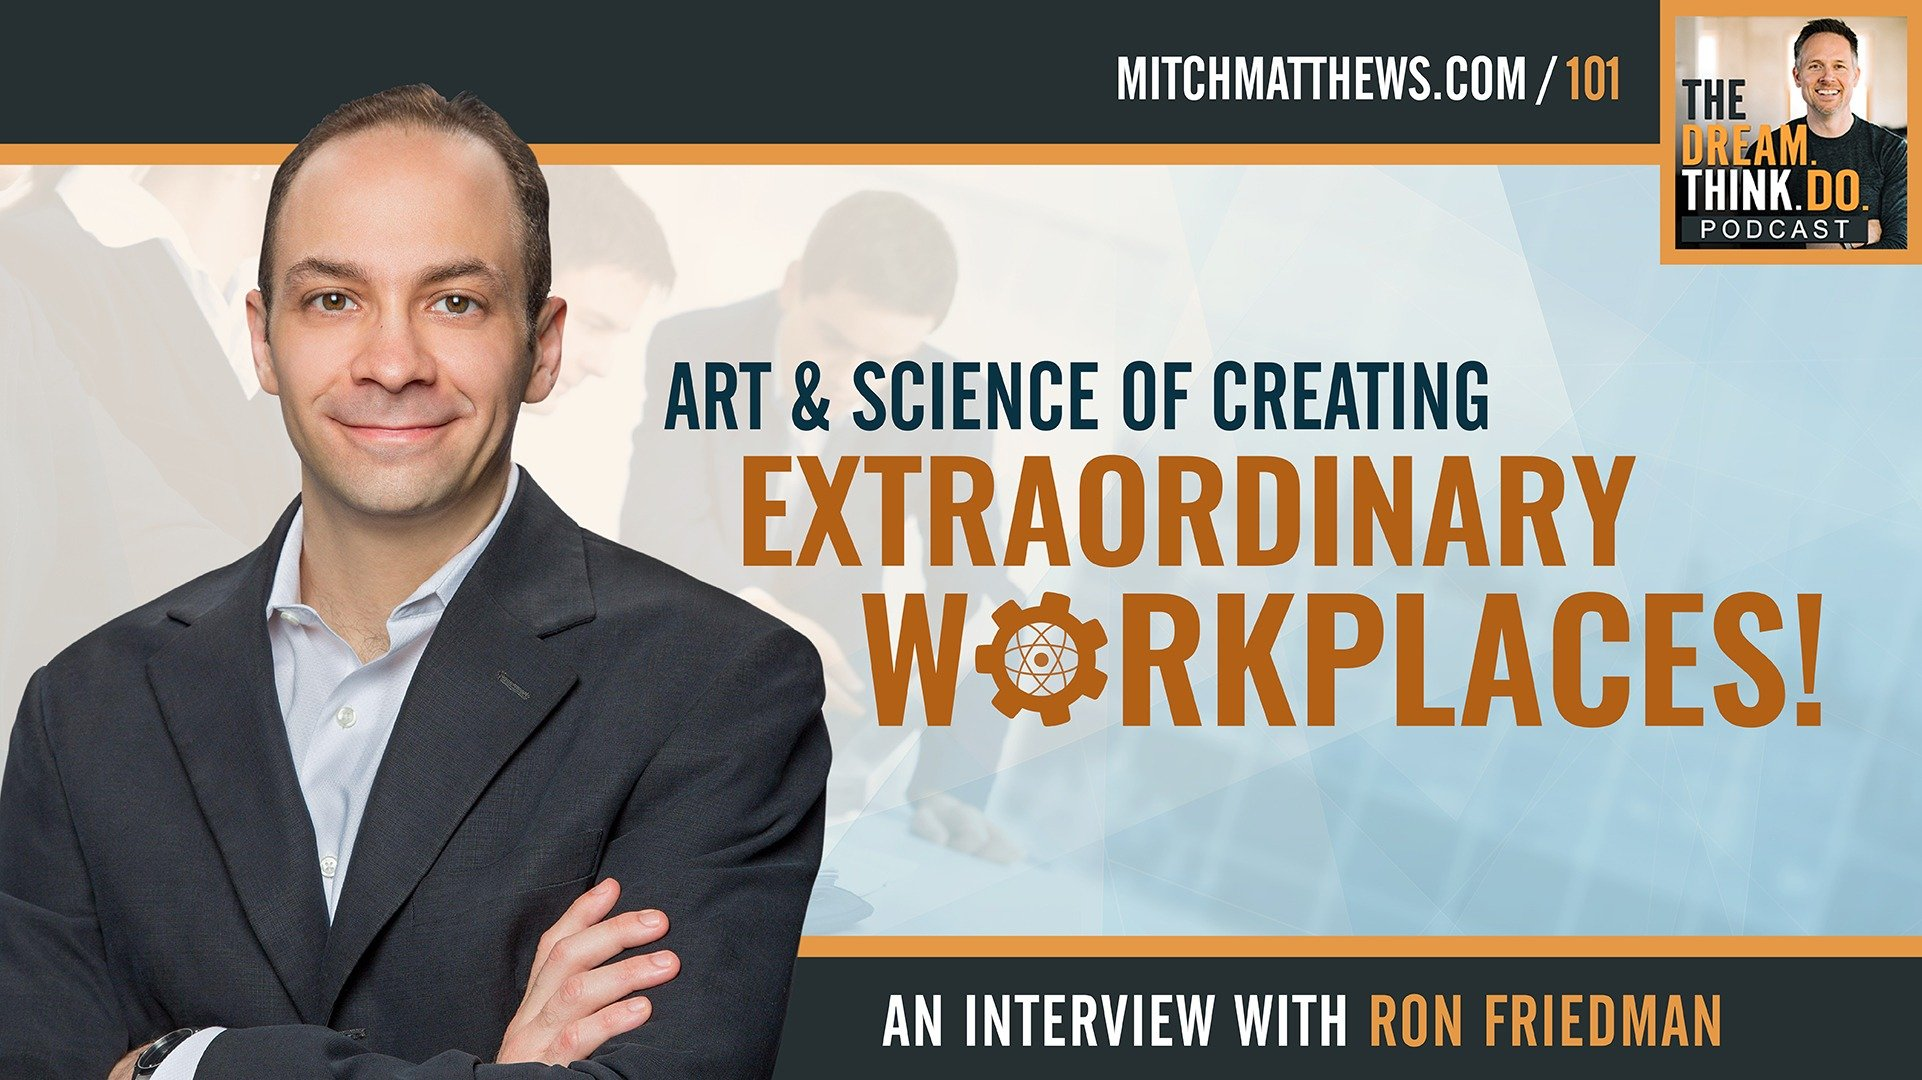 The ART and Science of Creating Extraordinary Workplaces! | An Interview with Ron Friedman